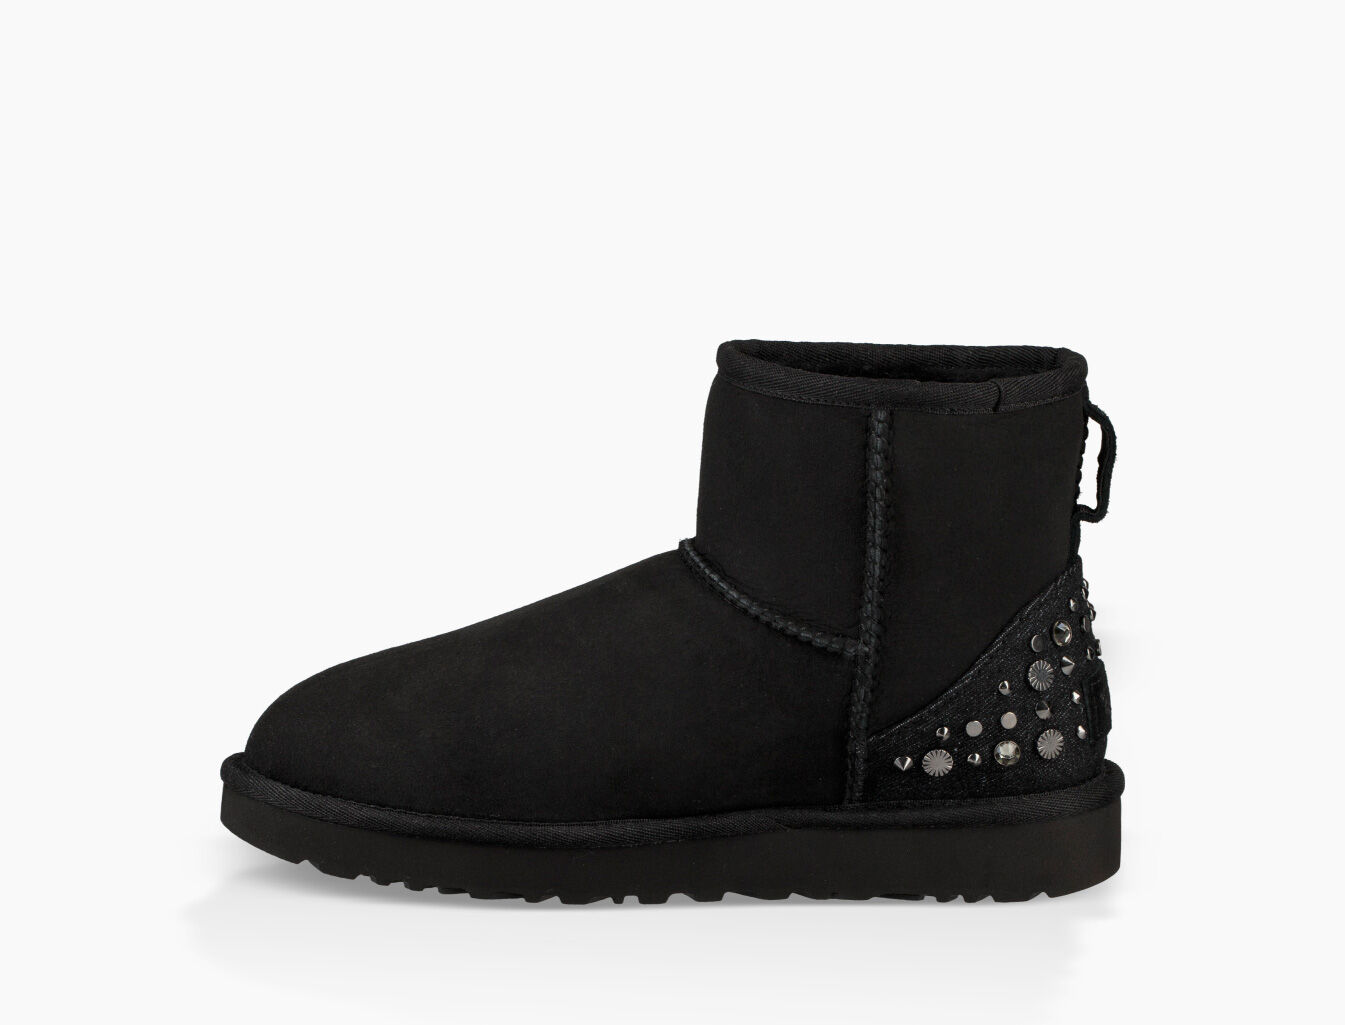 Zoom Mini Studded Bling Boot - Image 3 of 6